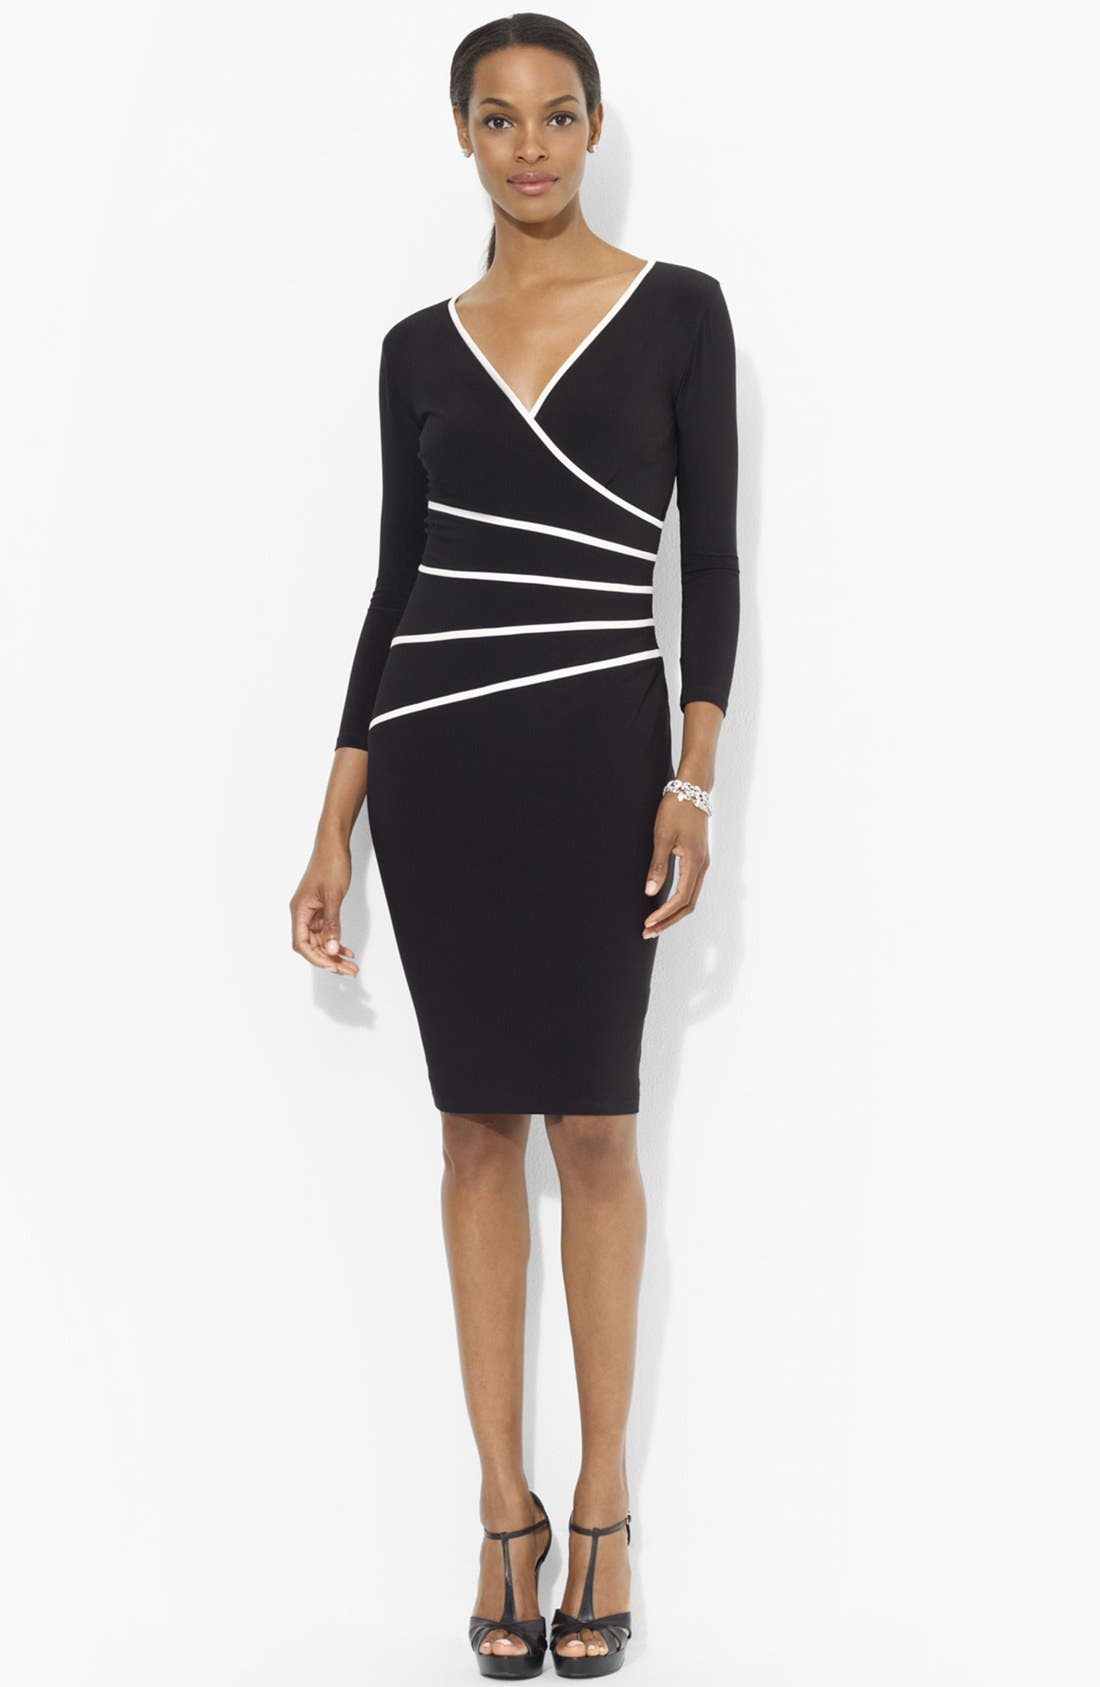 Alternate Image 1 Selected - Lauren Ralph Lauren Contrast Trim Jersey Sheath